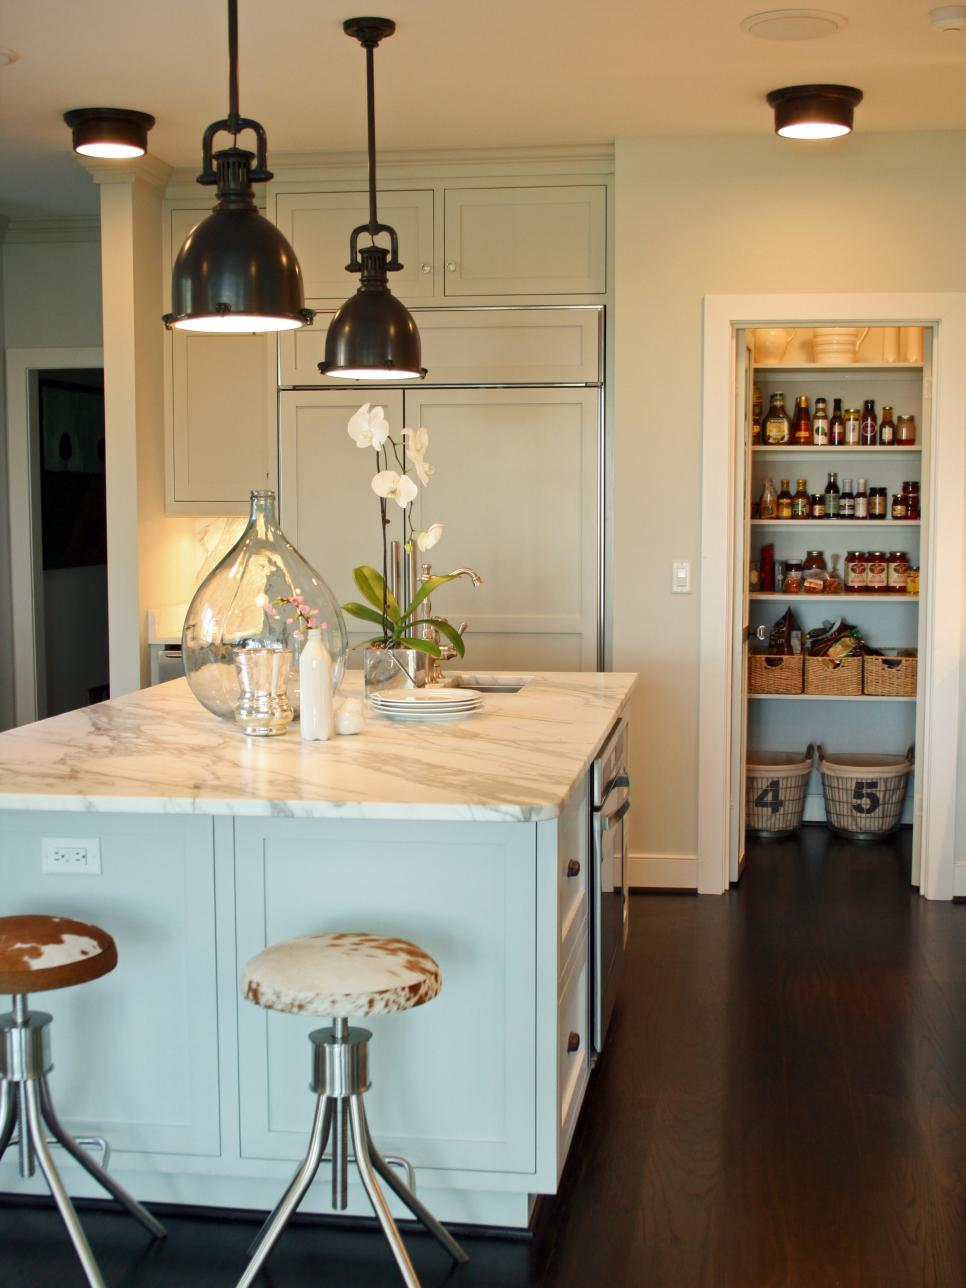 For Kitchen Kitchen Lighting Design Tips Hgtv